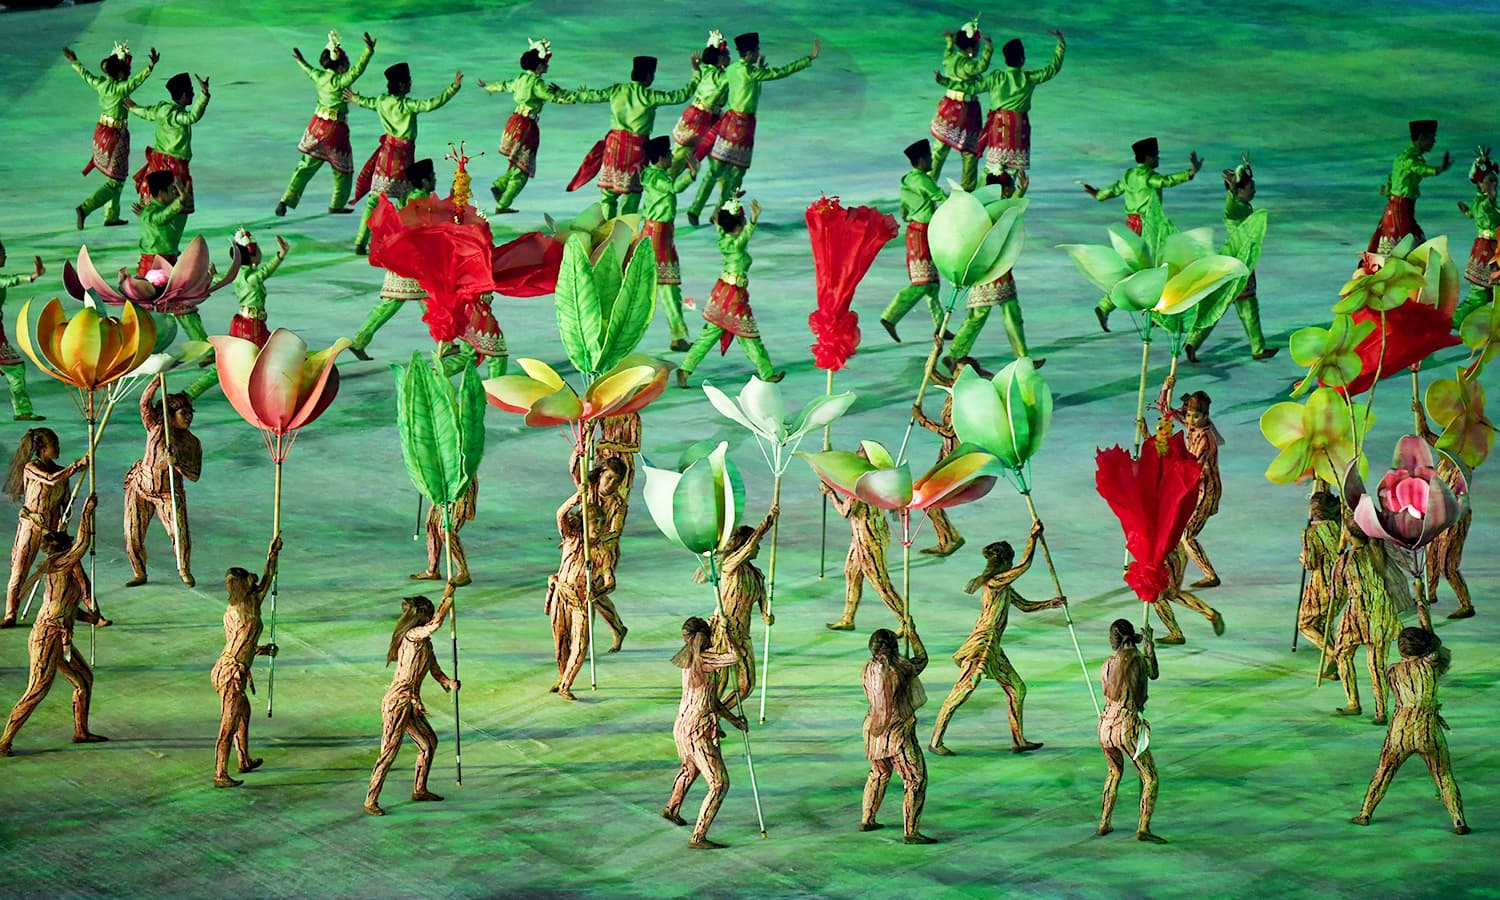 An eye-catching performance during the opening ceremony. —AFP